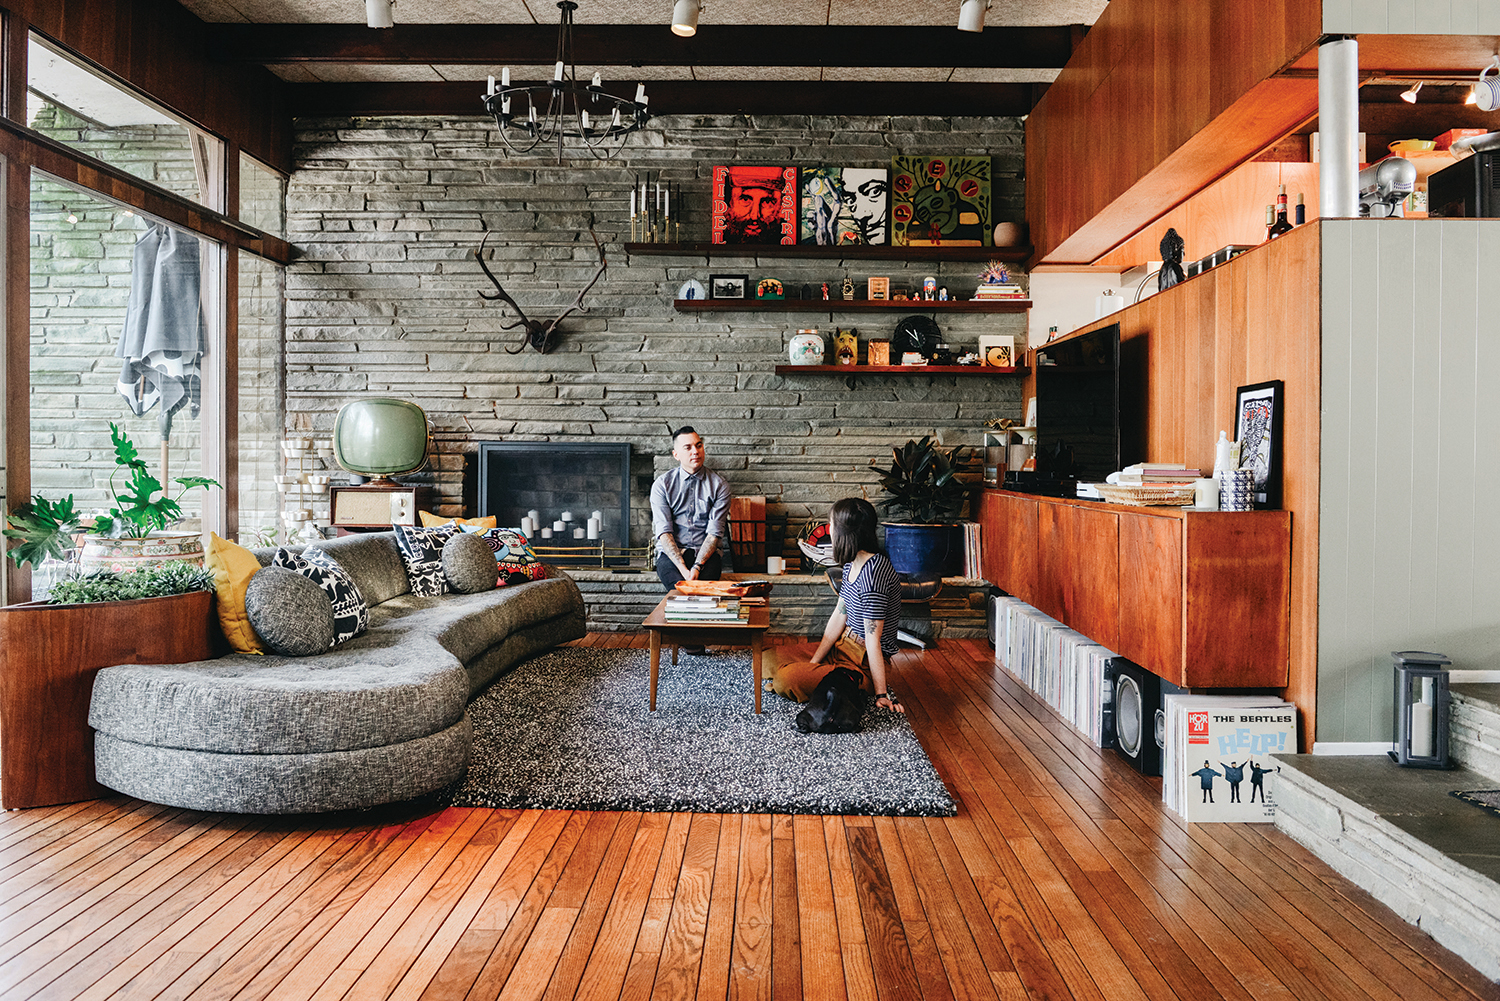 When house hunting, Chris Barker and Jane Hallinan were seeking character over location, and what they found was a Mid-Century retreat with preserved character and a plot of land worth protecting.